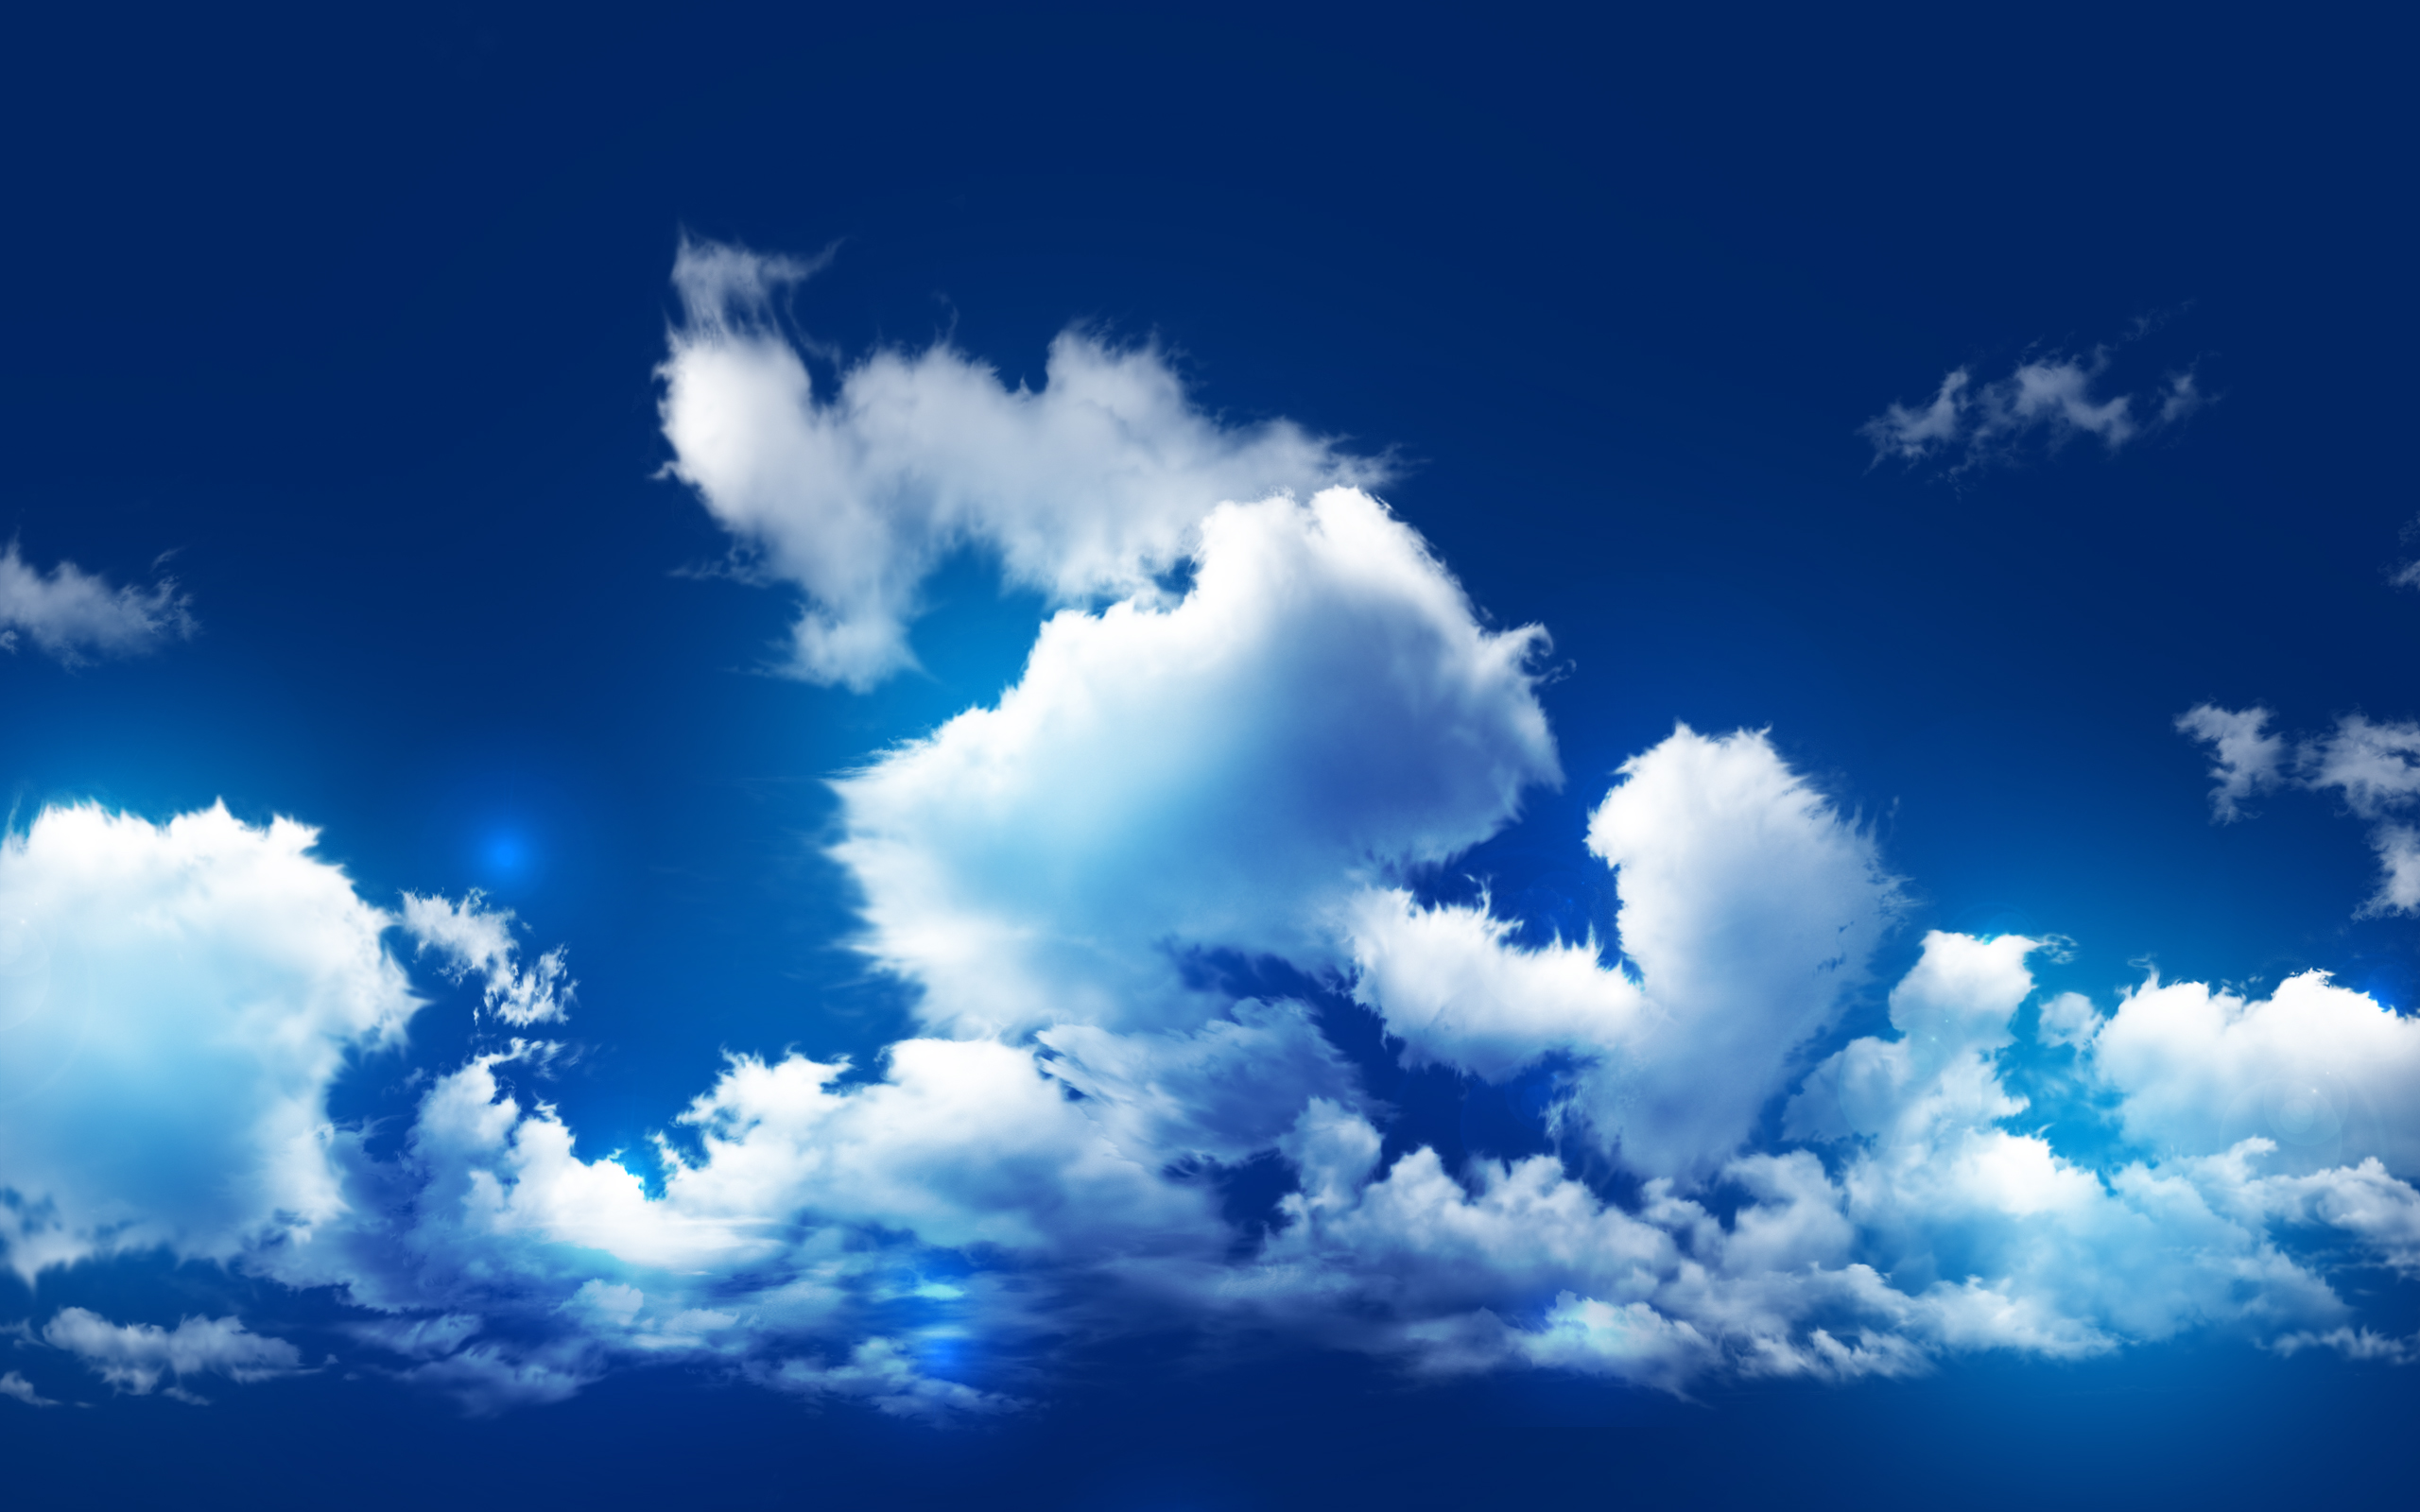 Cloudy Sky Wallpapers HD Wallpapers 2560x1600